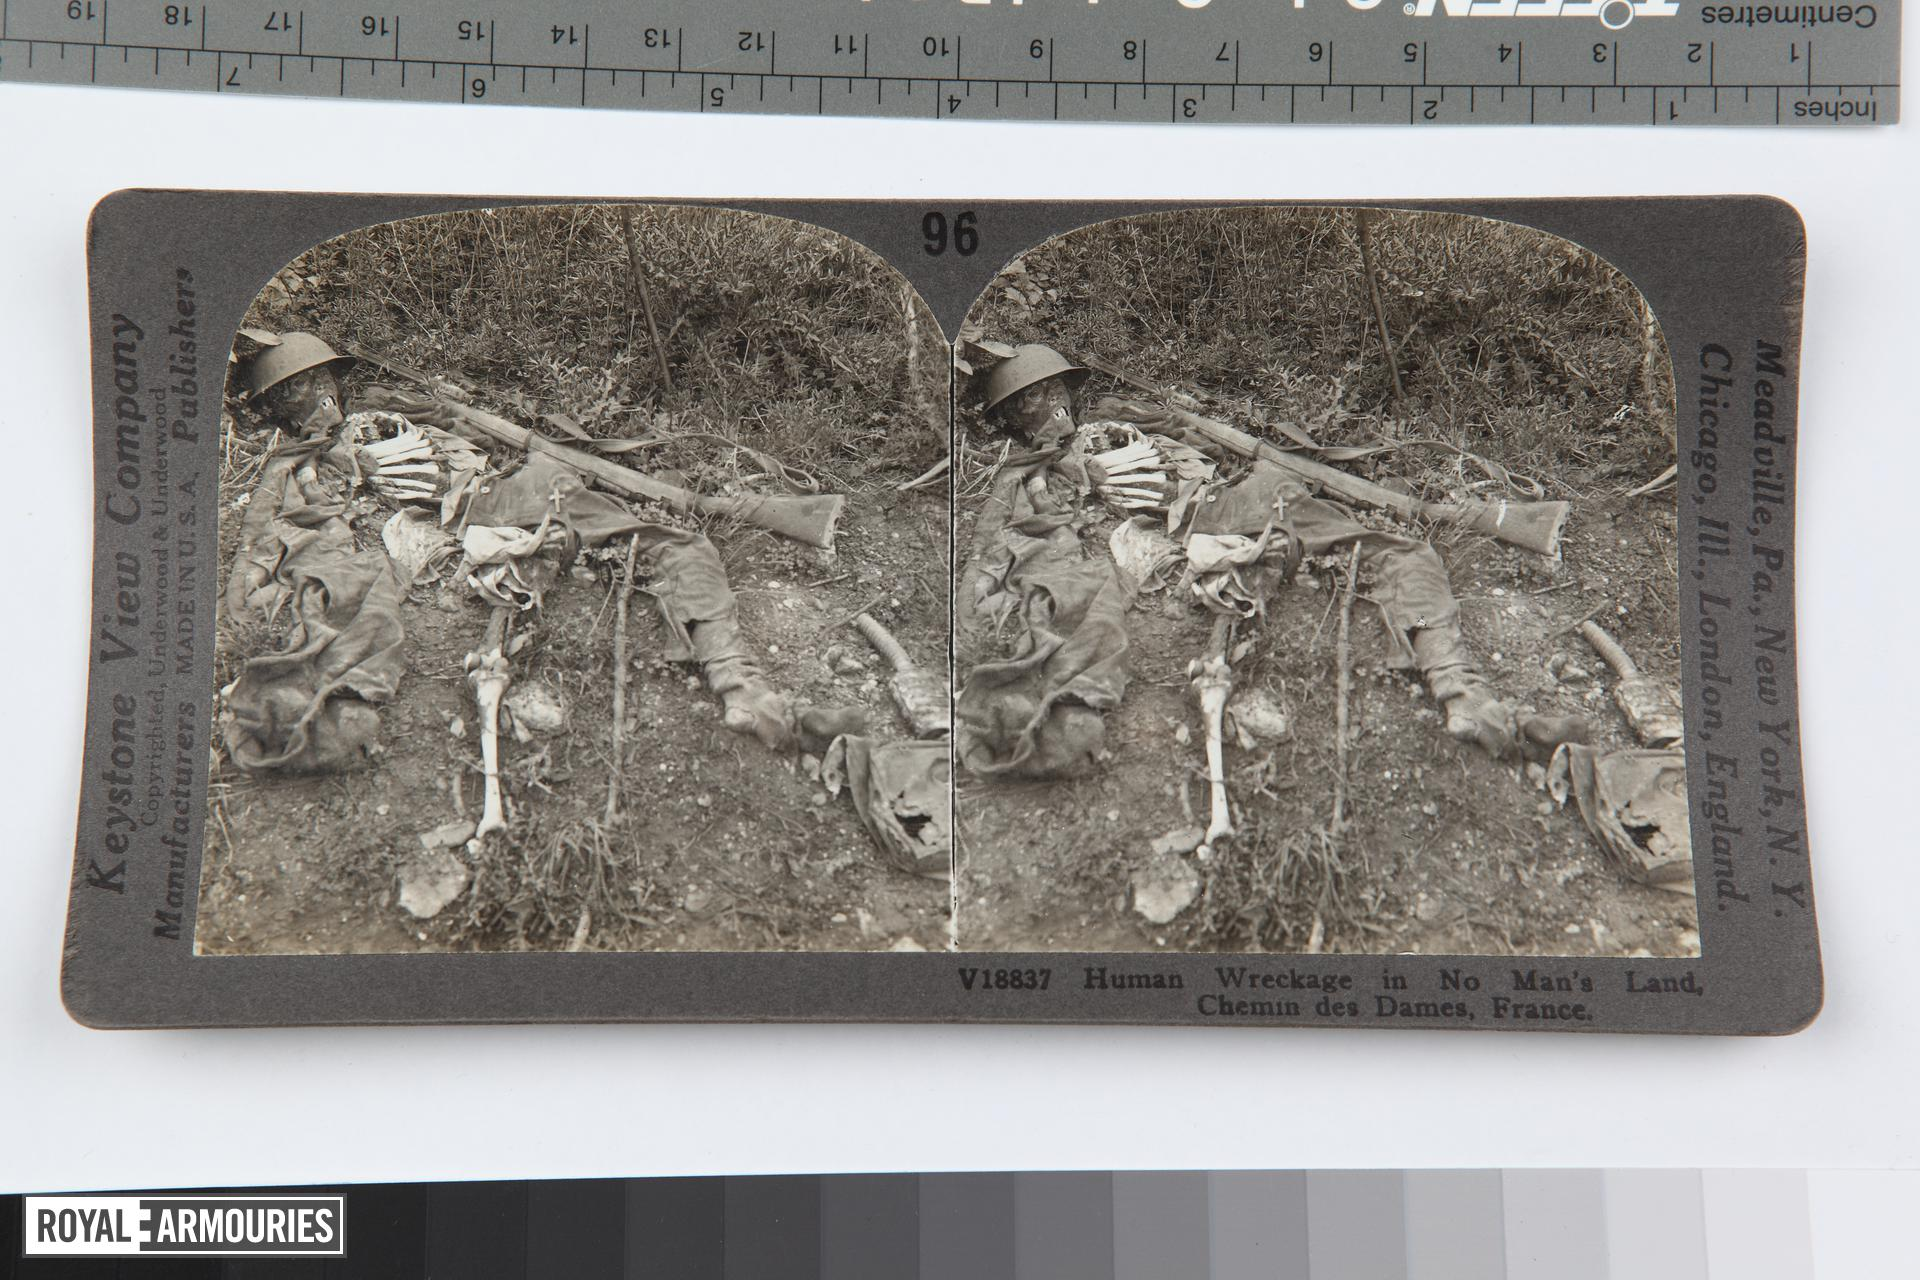 Stereoscopic photograph entitled '96. Human Wreckage in No Man's Land, Chemin des Dames, France', American, 1914-1919.